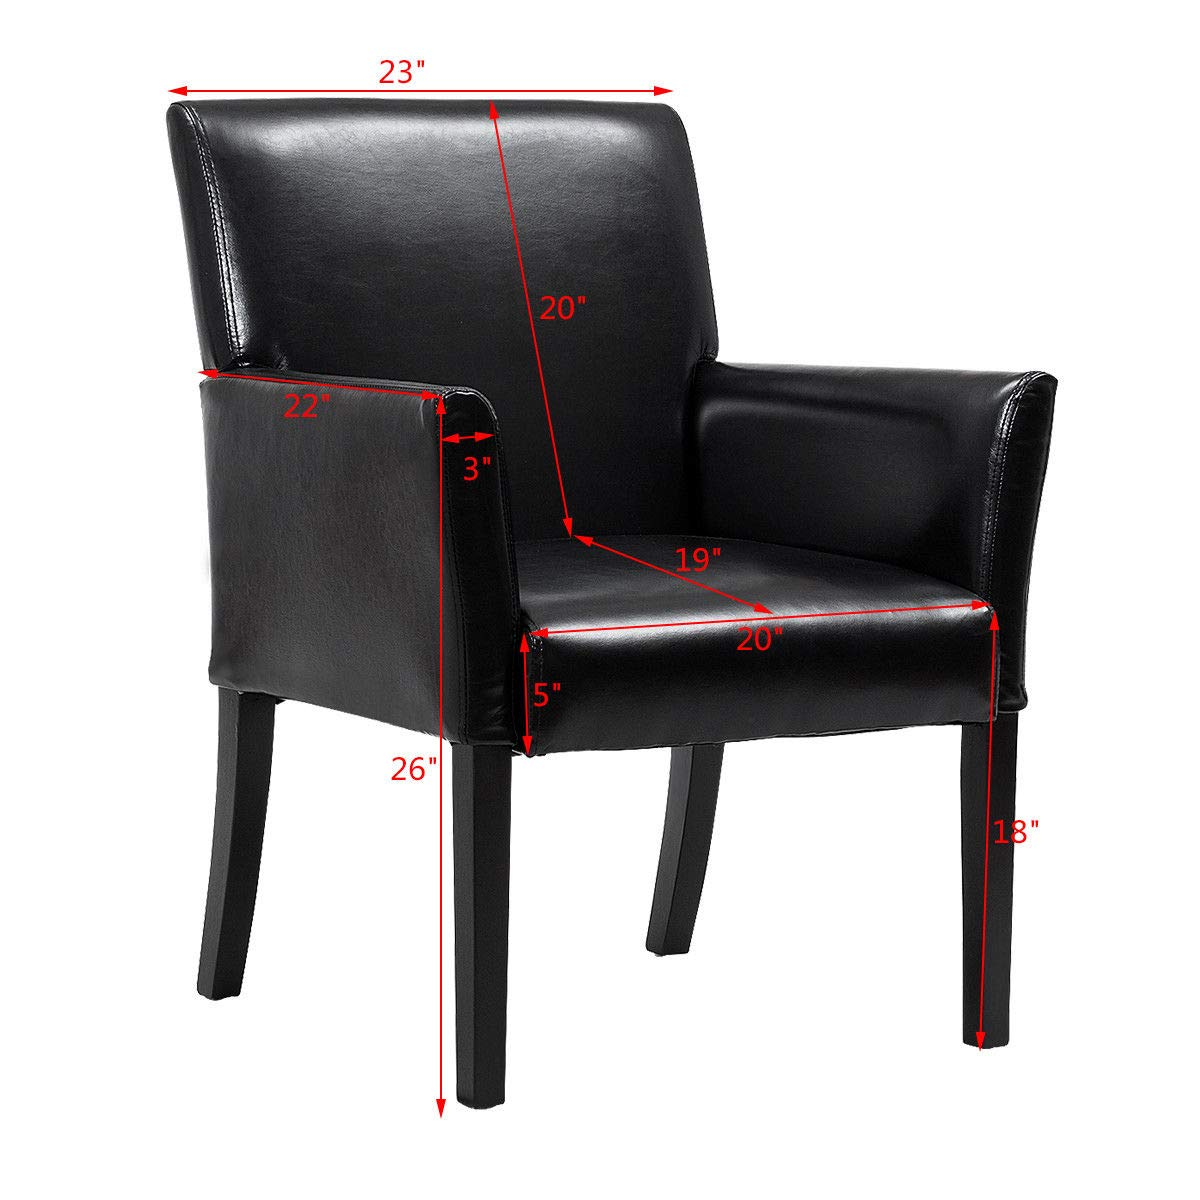 1 PC Black Giantex Leather Reception Guest Chairs Set Office Executive Side Chair Padded Seat Ergonomic Mid-Back Meeting Waiting Room Conference Office Guest Chairs w//Arms